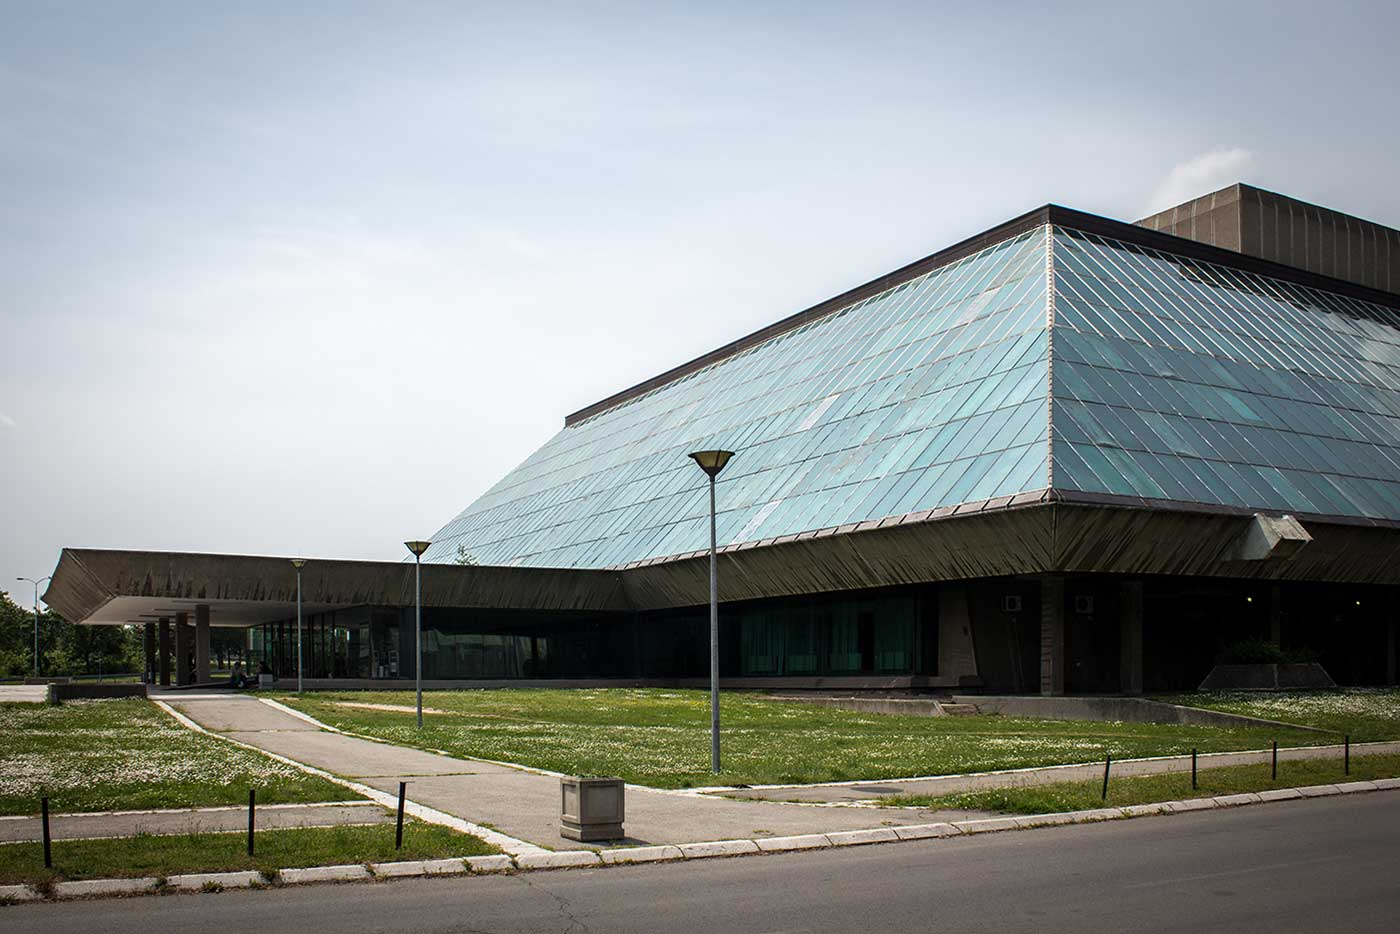 Entrance to the Sava Centre in New Belgrade, Serbia (Stojan Maksimović, 1976-79).